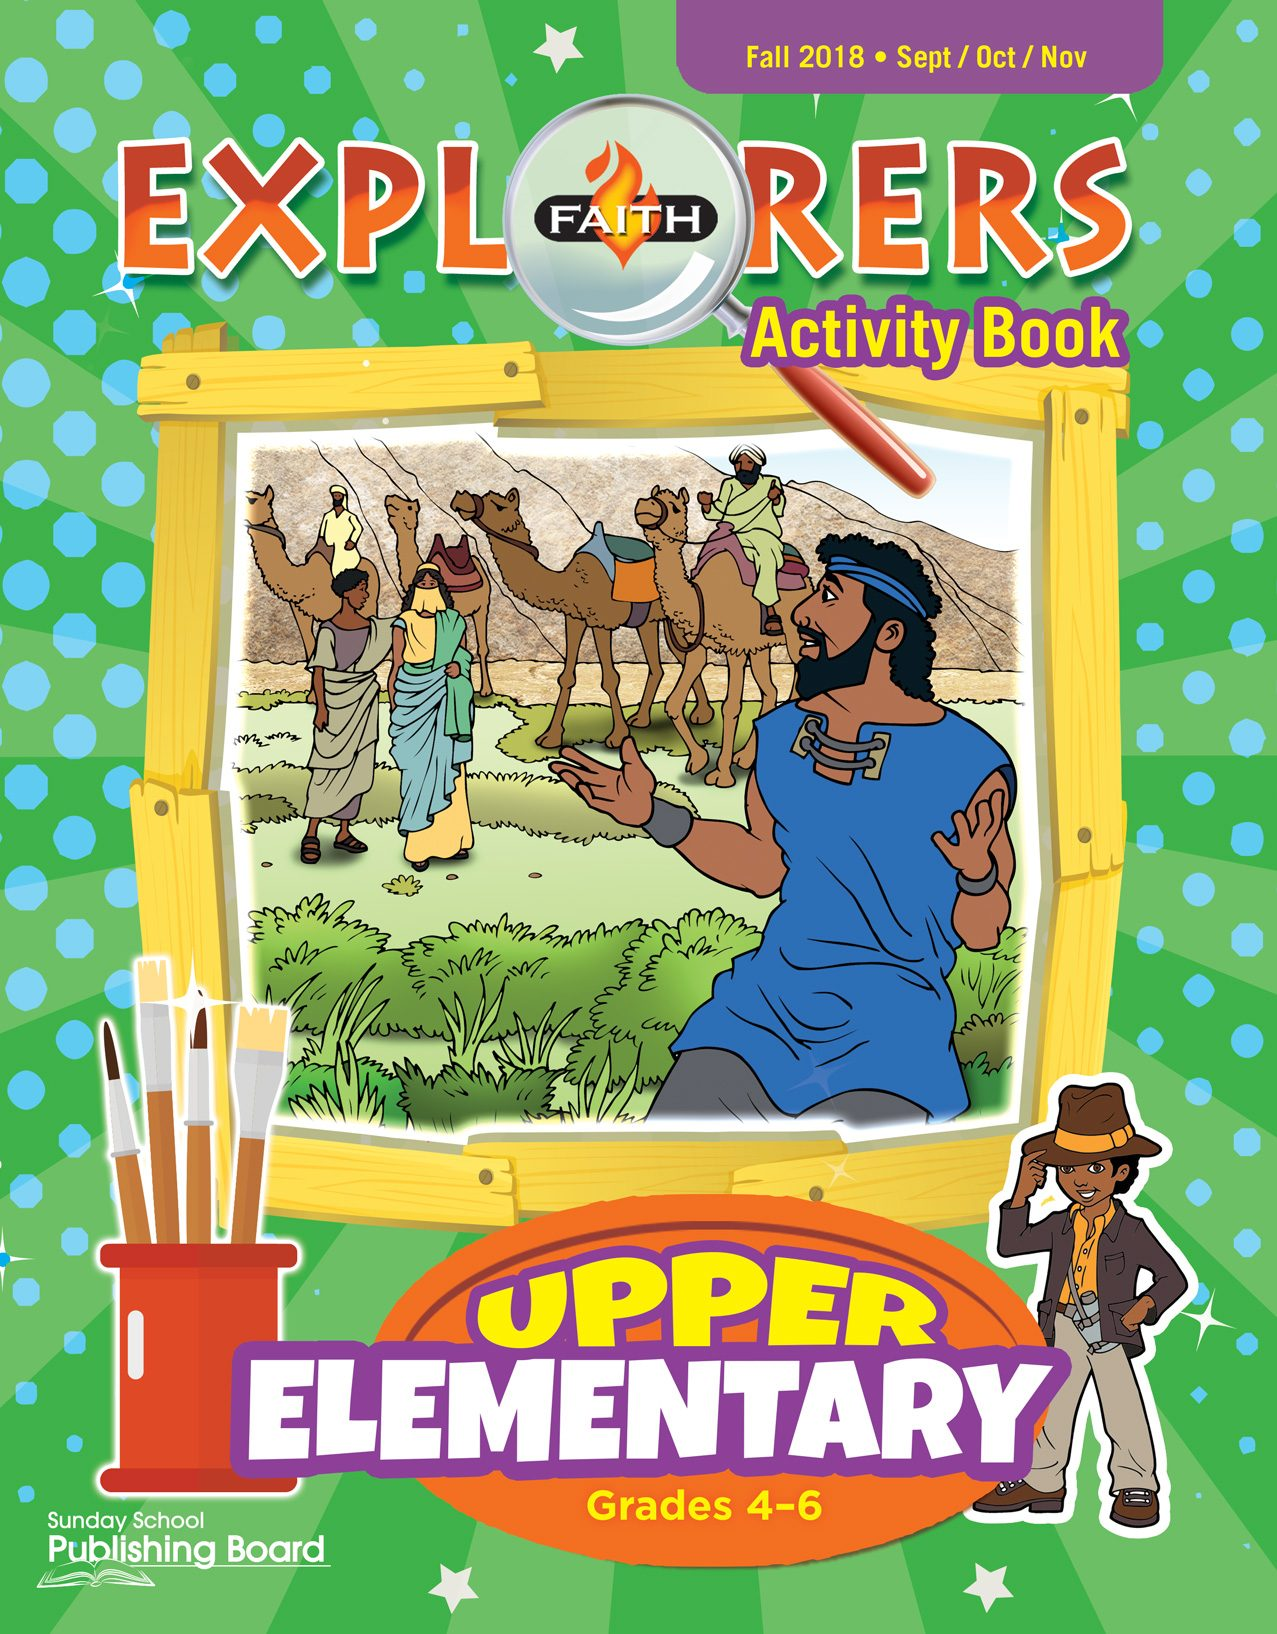 Faith Explorers Activity Book, Upper Elementary for Grades 4-6 (Fall 2018)-Digital Edition